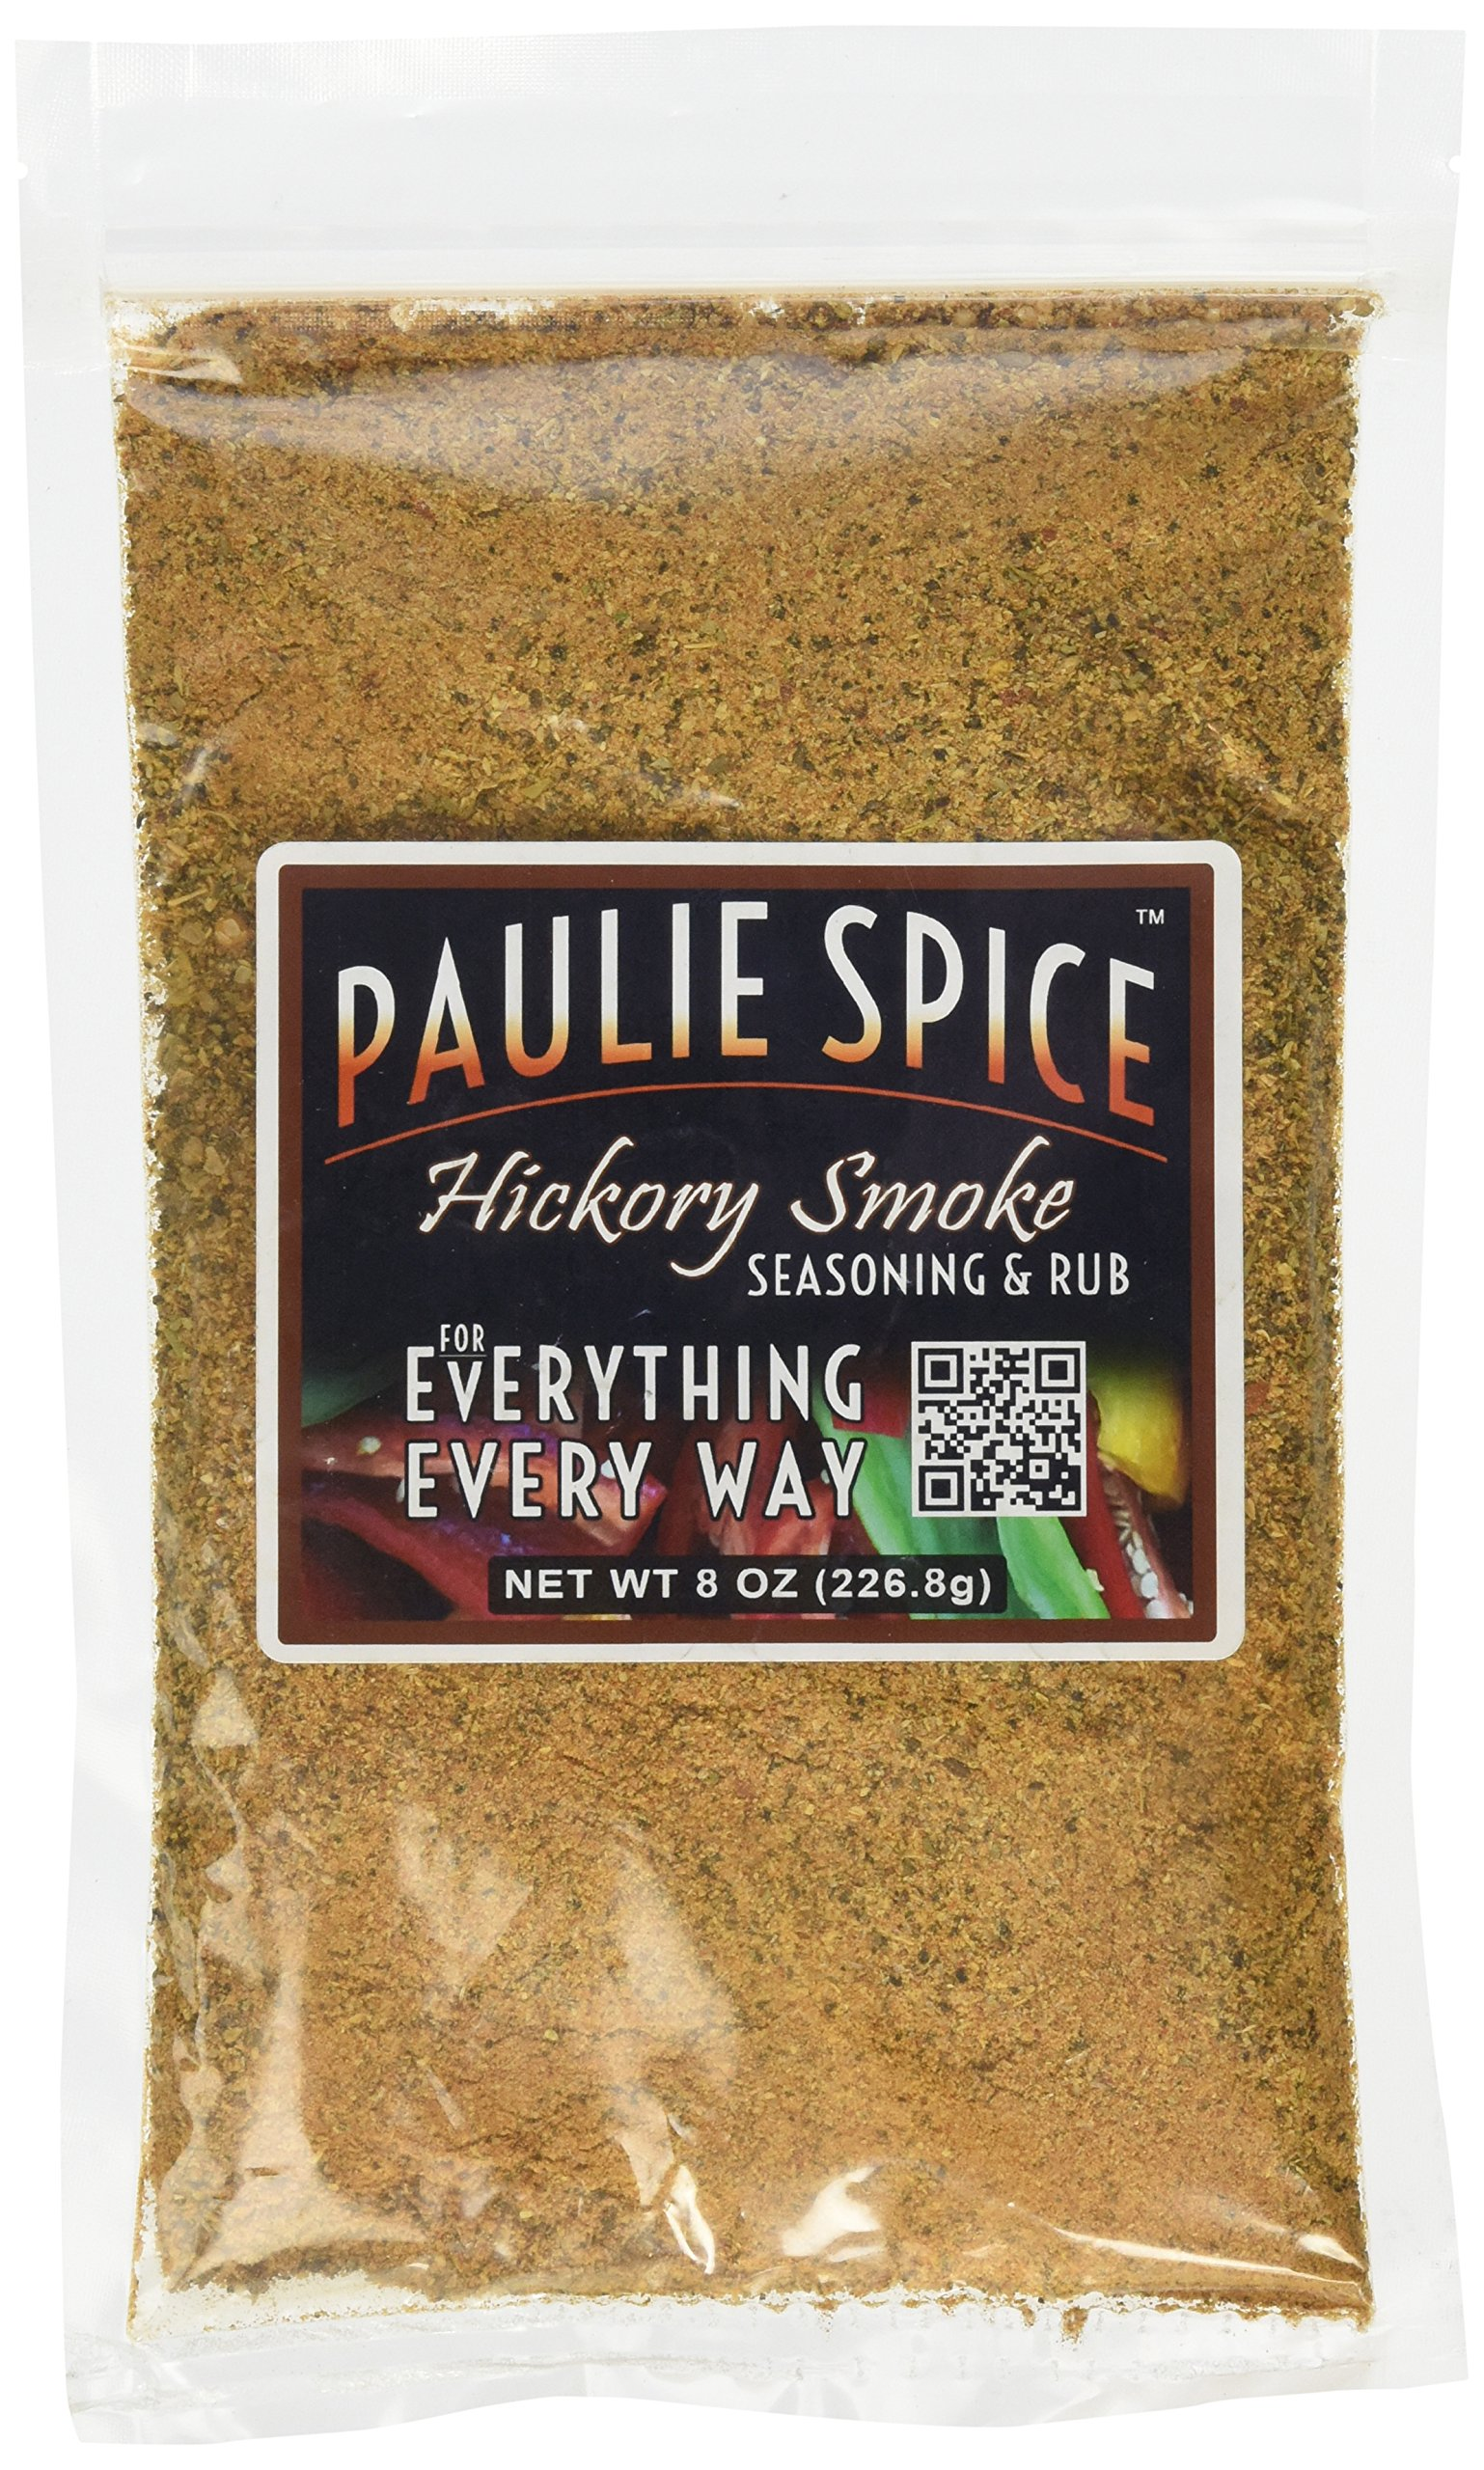 Paulie Spice : Sweet Hickory Smoke BBQ Seasoning and Rub For: Steak, Ribs, Rib, Meat, Pork, Chicken, Wings, Beef, Brisket, Salmon, Prime Rib, Fish, Grill, Grilling, Smoked, Barbecue, Dry, Rubs, Spices